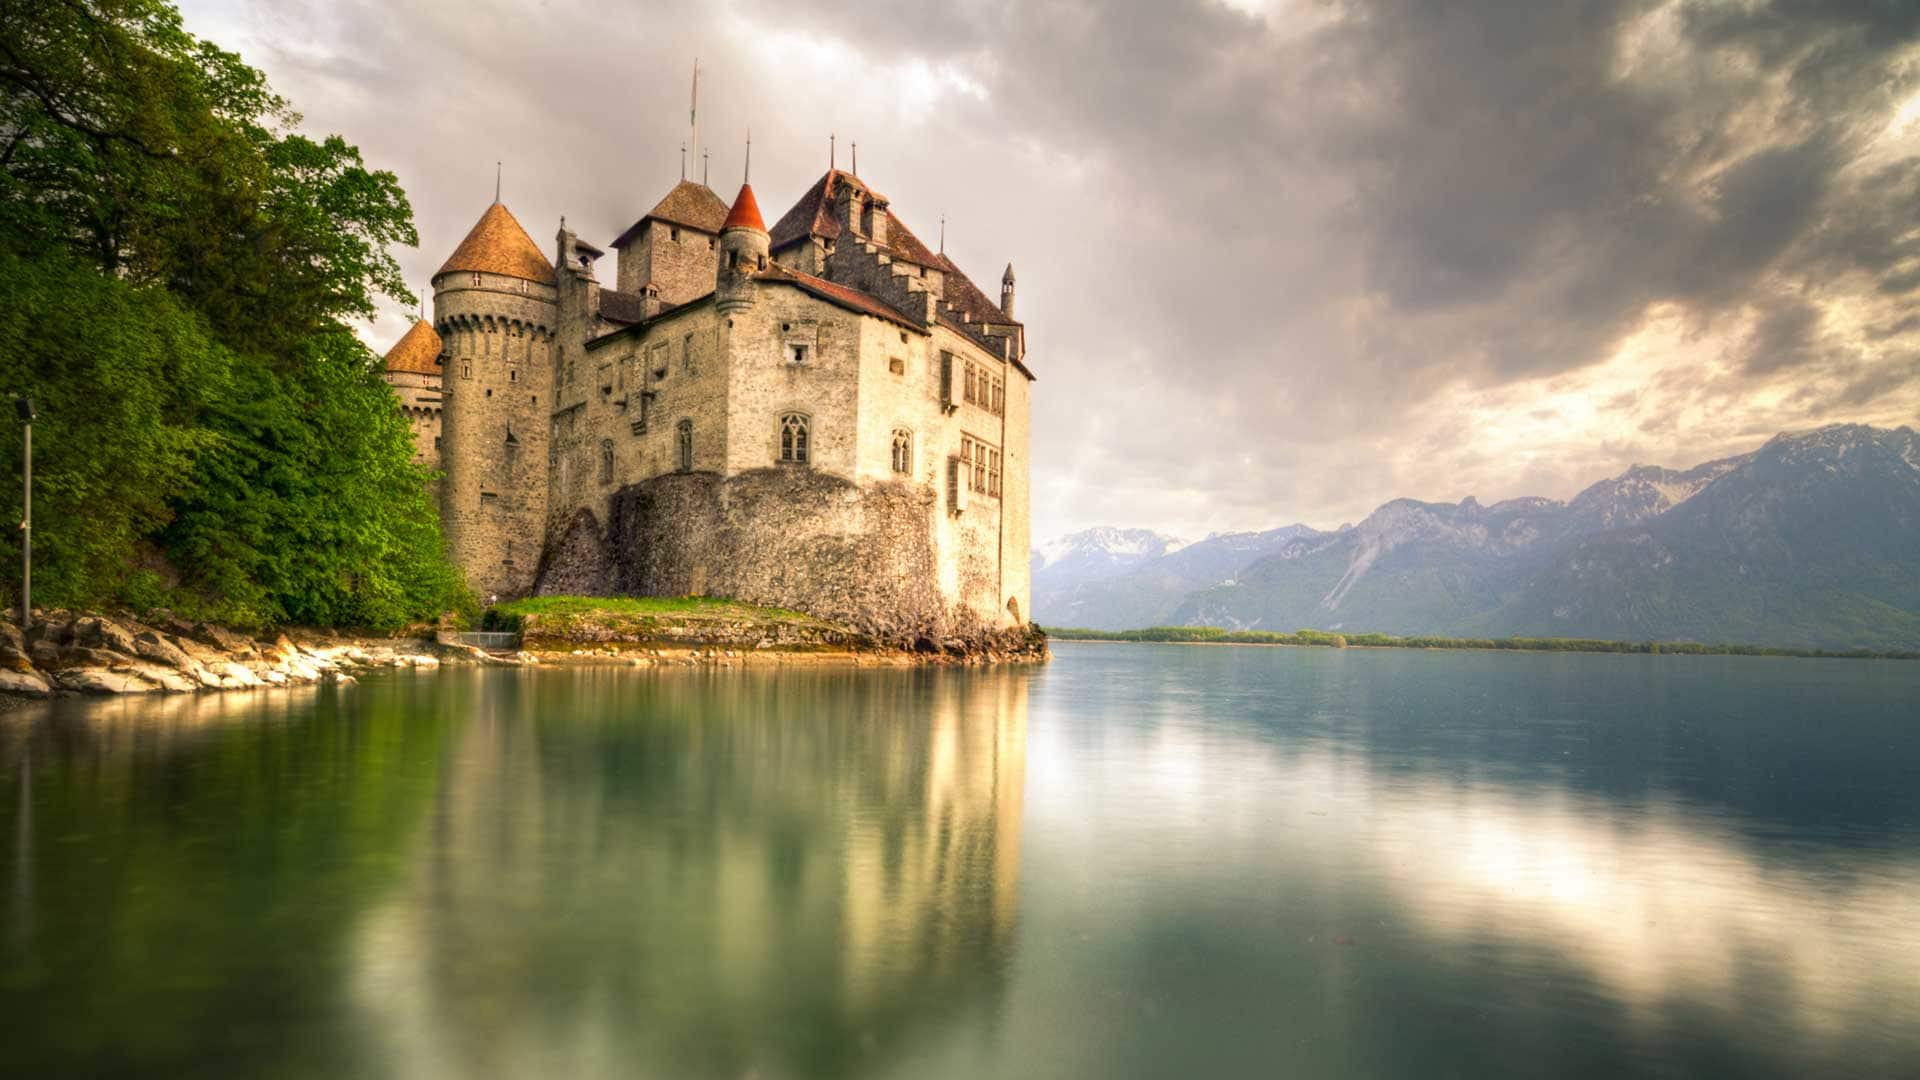 castle, water body beside mountains